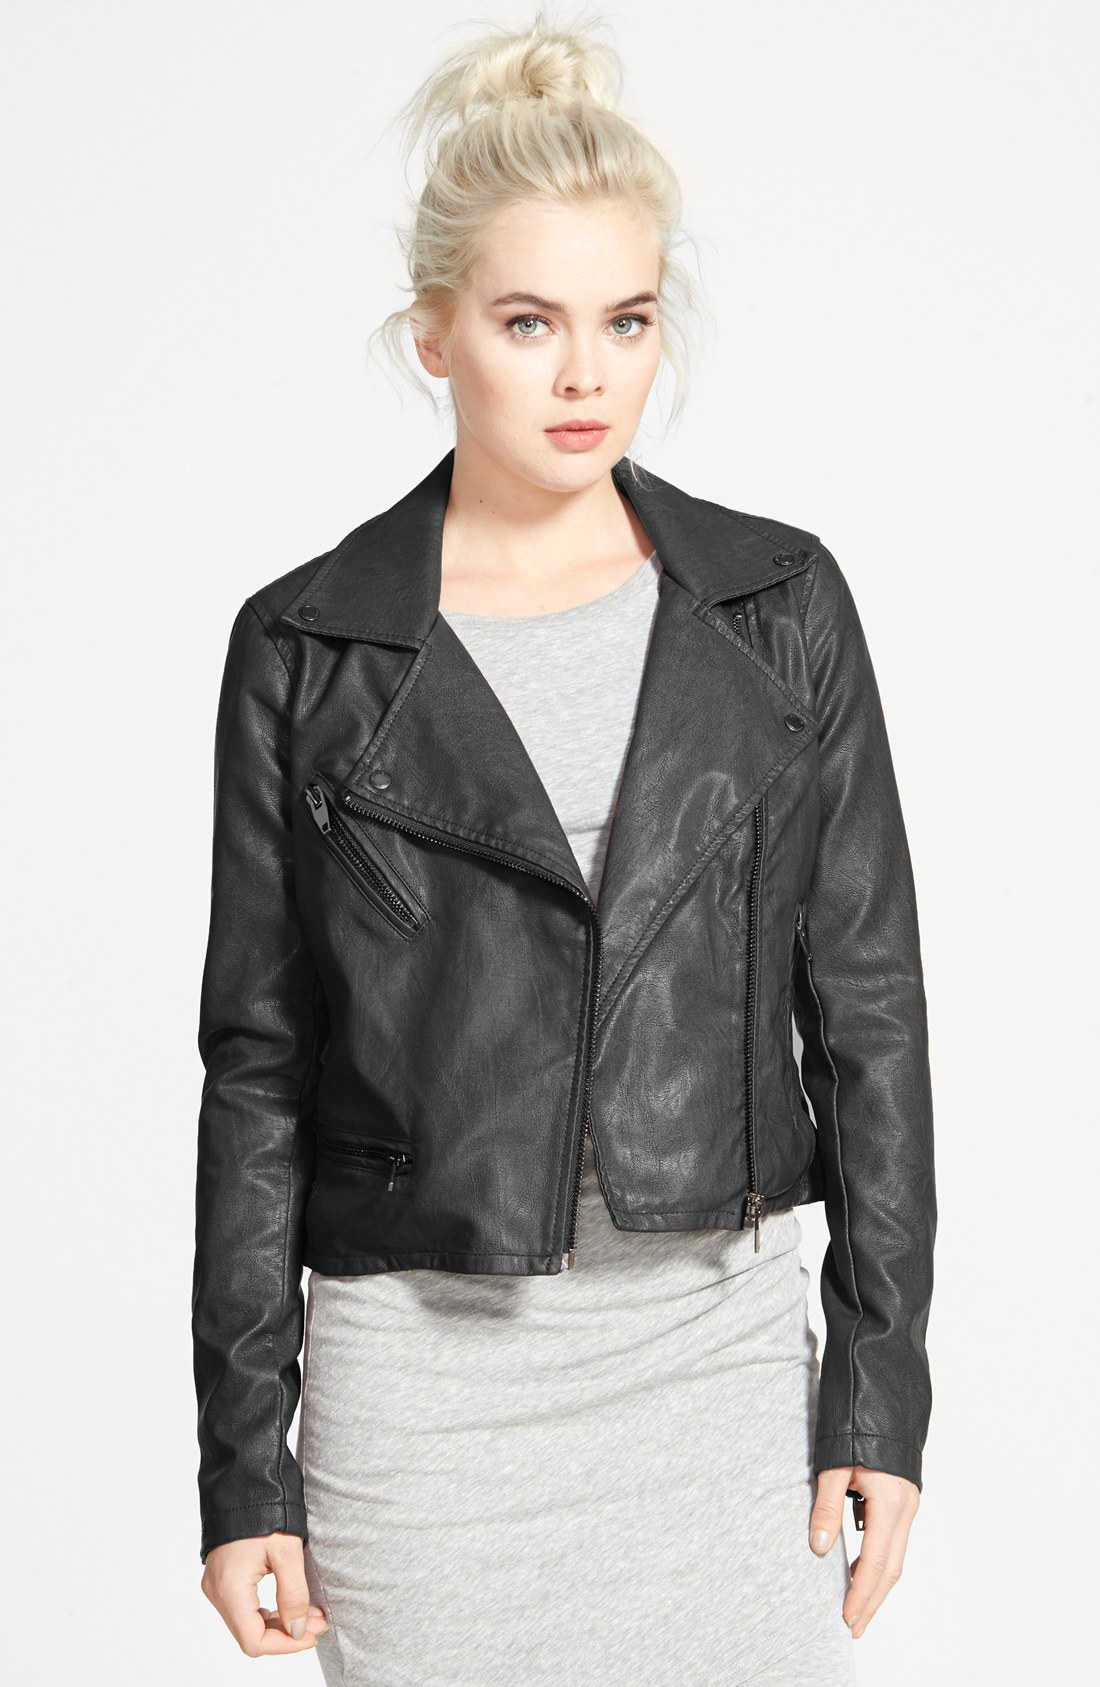 Quilted Faux Leather Moto Jacket   Nordstrom : quilted faux leather moto jacket - Adamdwight.com